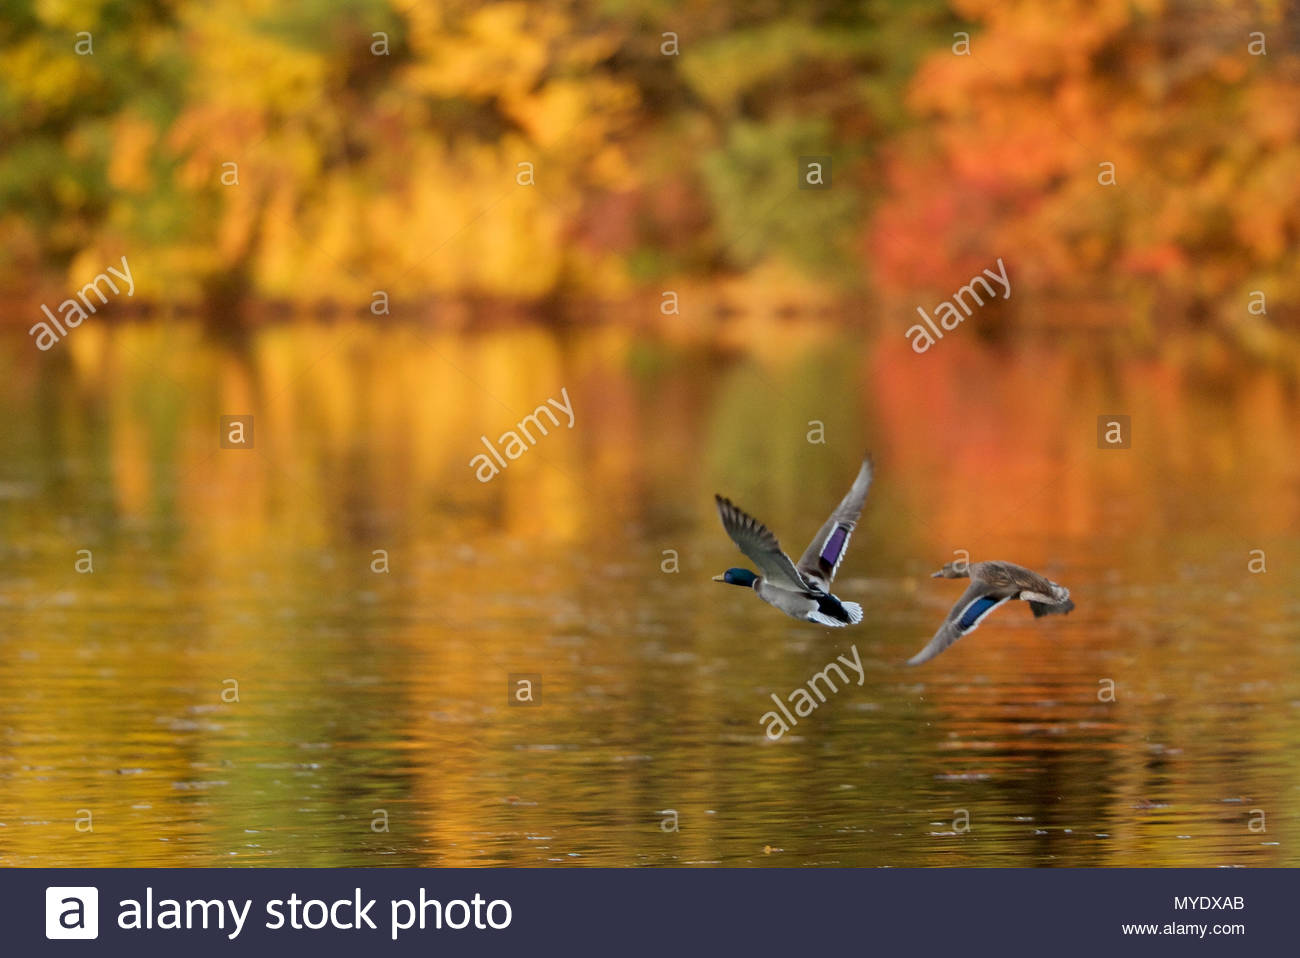 A mallard pair, Anas platyrhynchos, flies over Walden Pond in the fall. - Stock Image